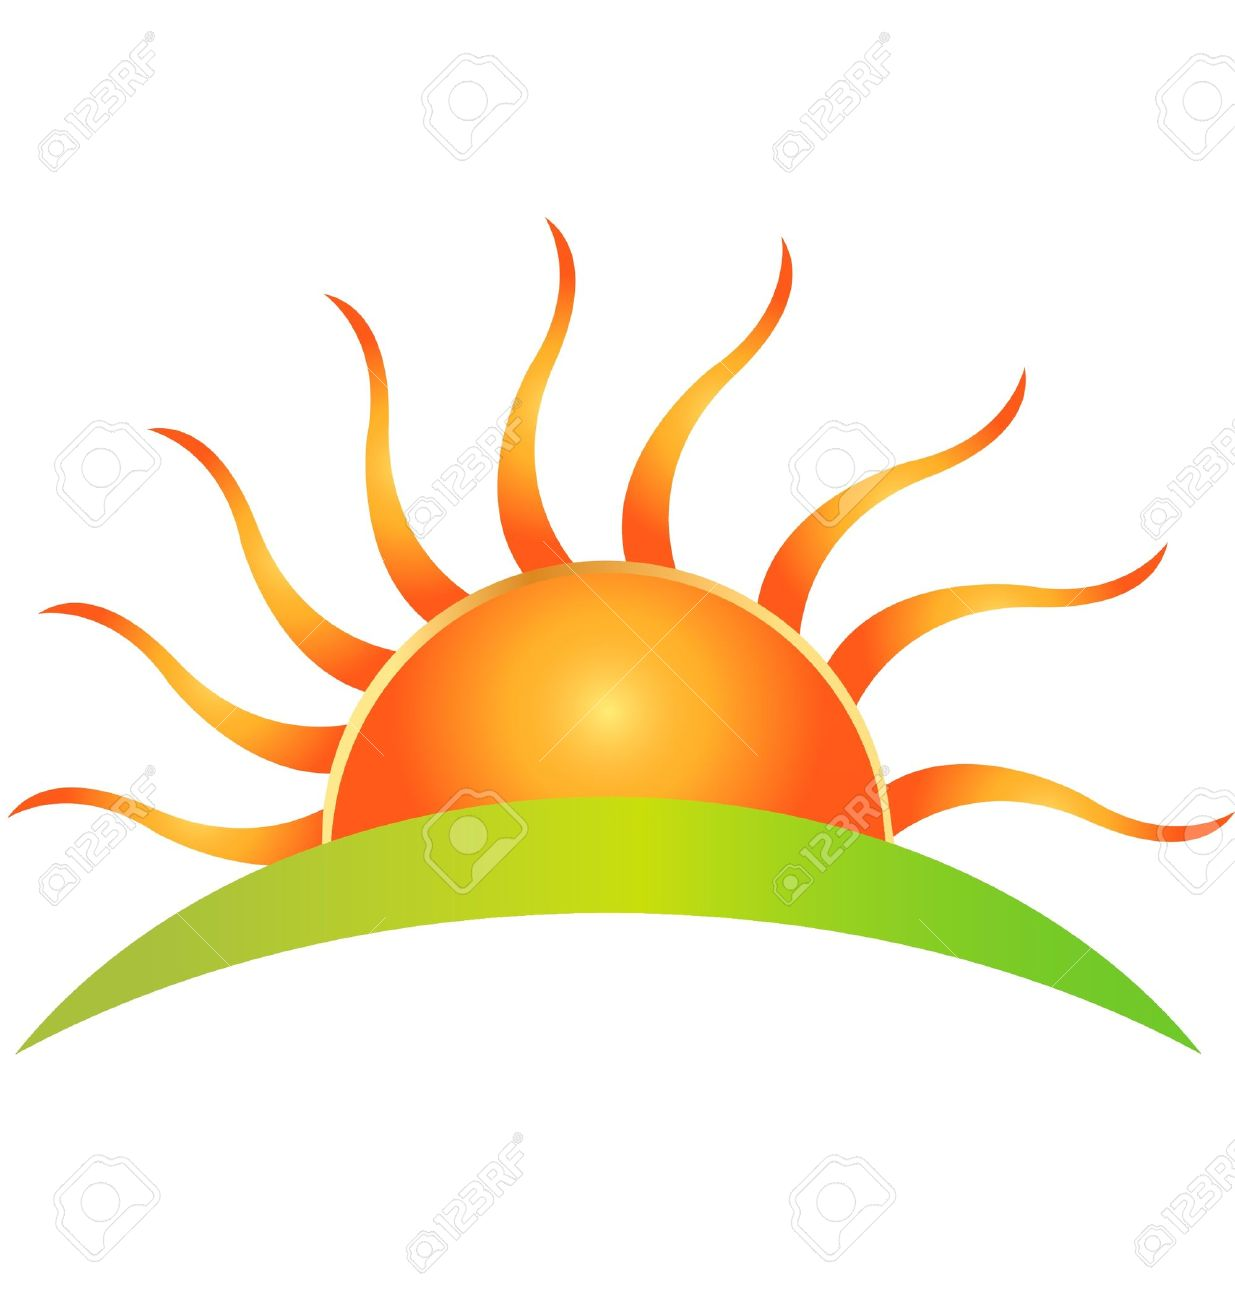 23 700 sun logo cliparts stock vector and royalty free sun logo rh 123rf com sun logo images sun logo images